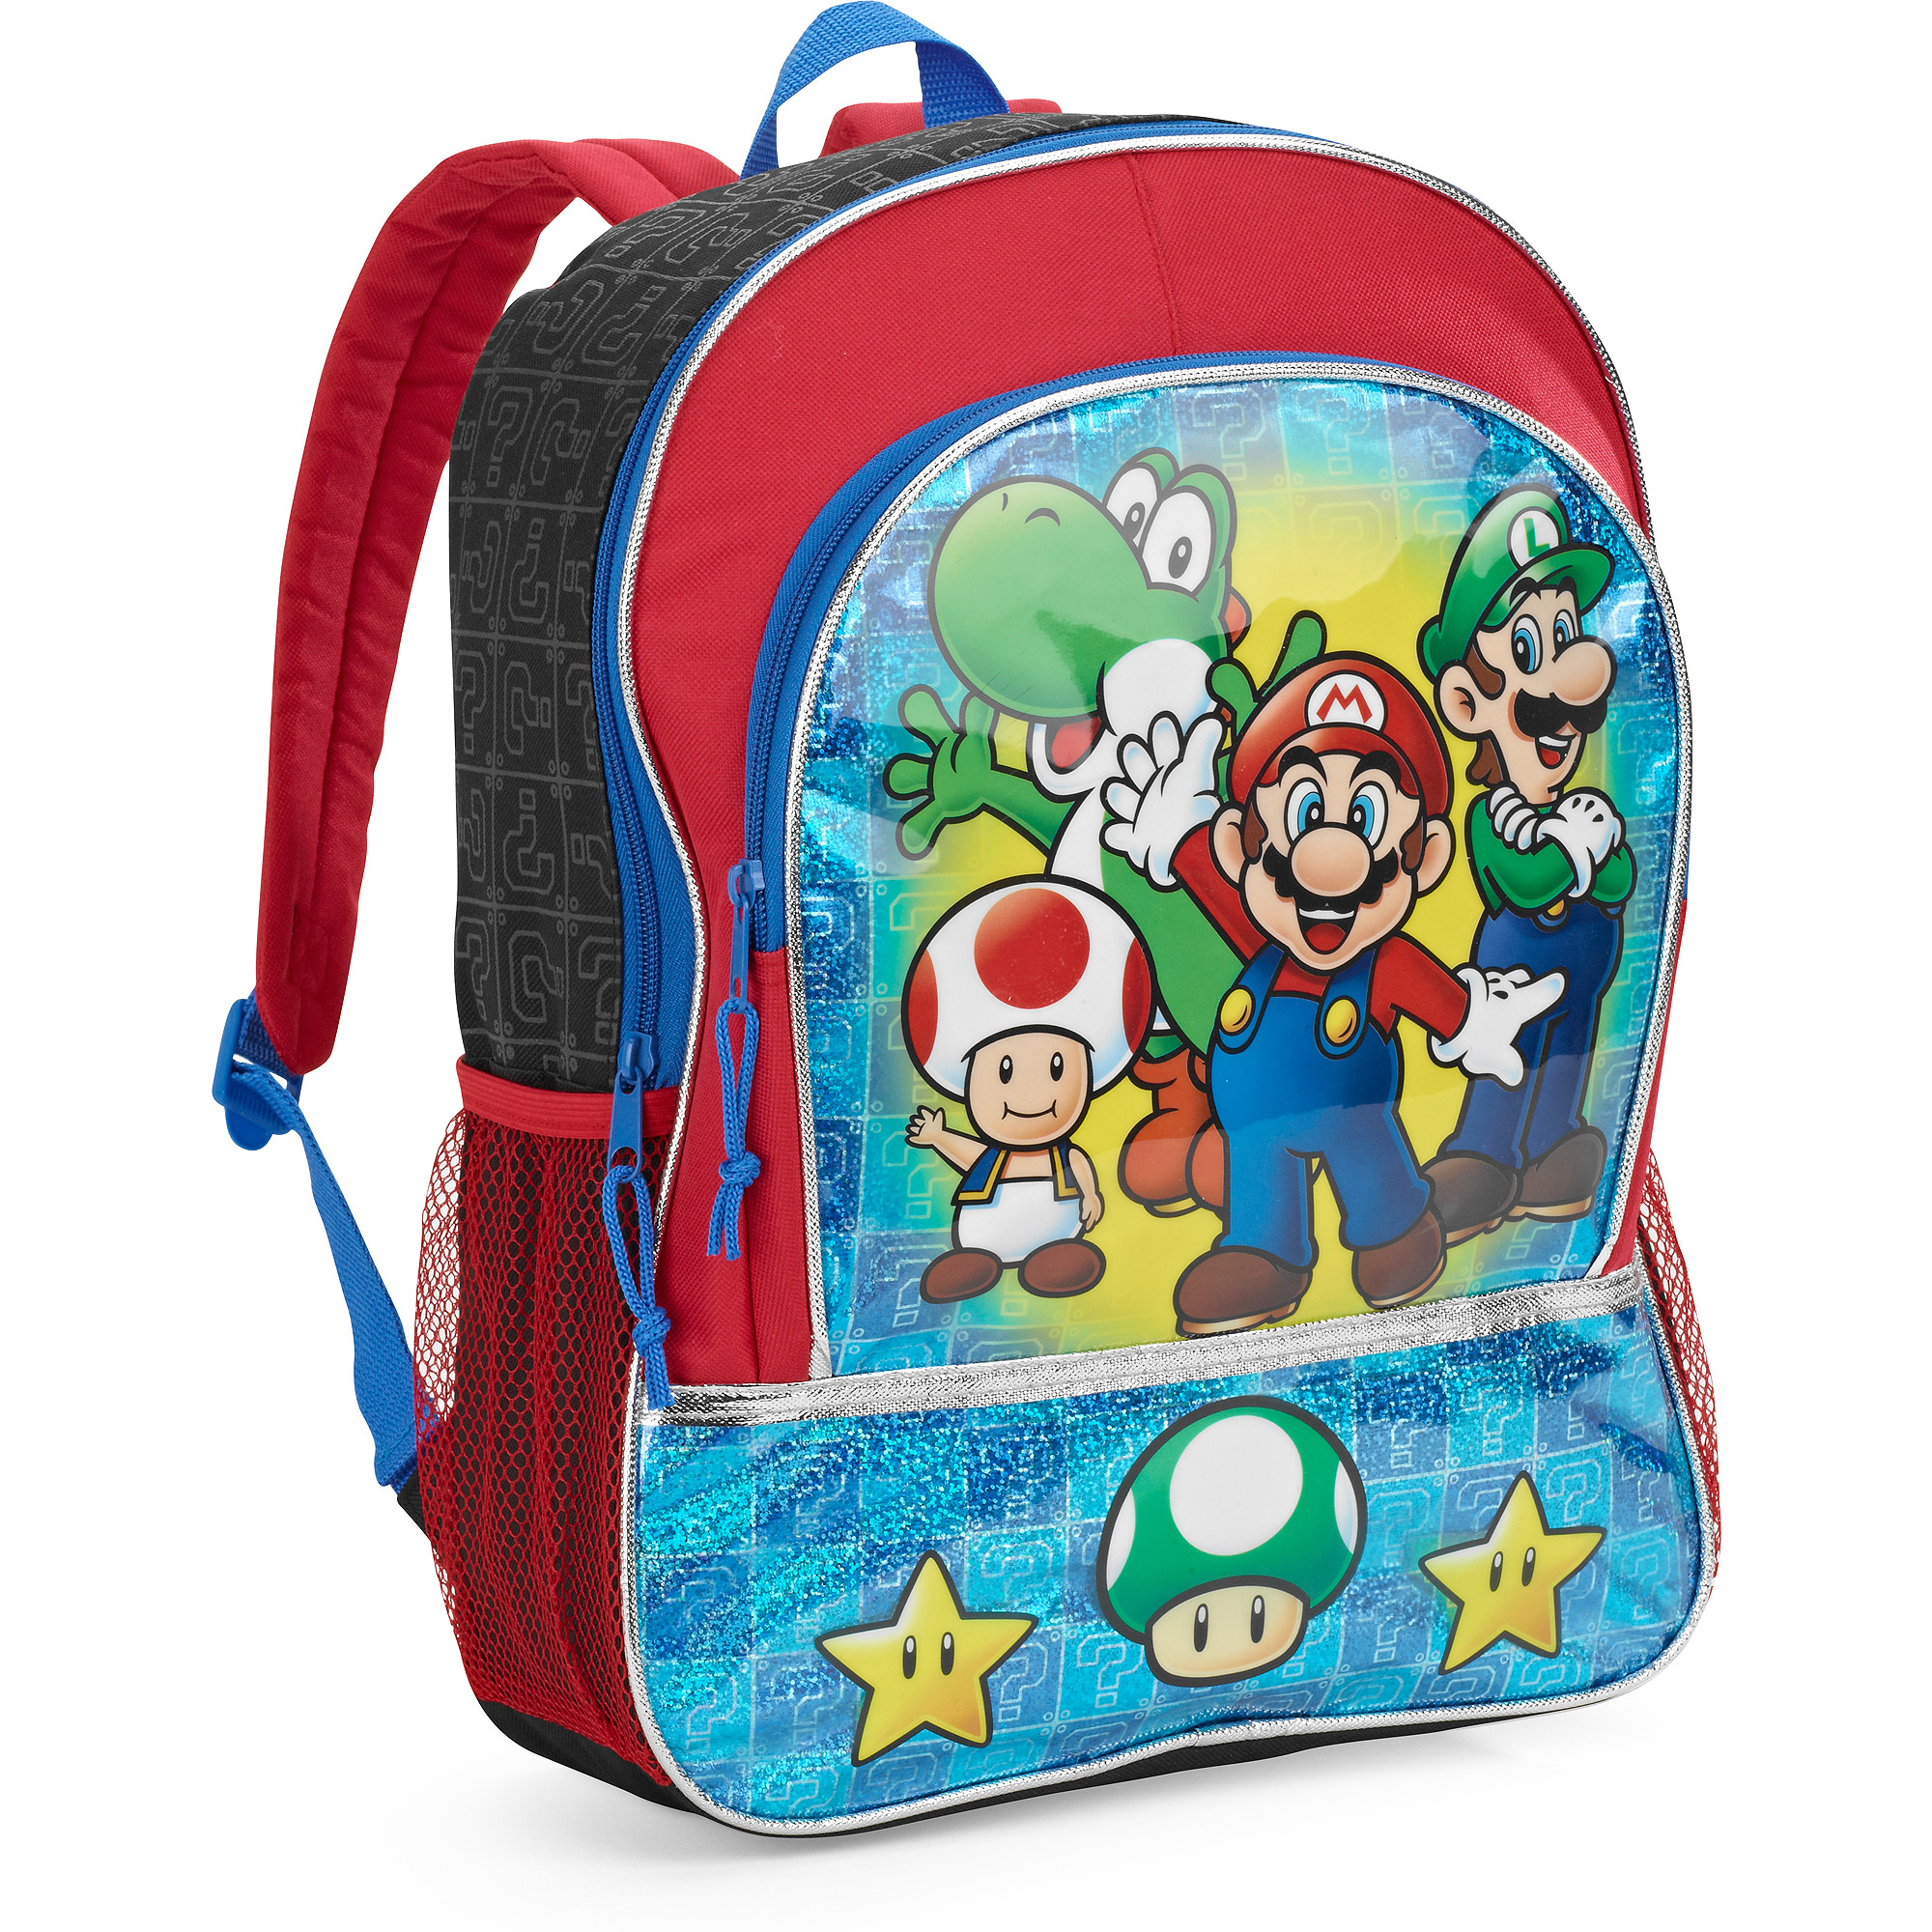 mario brothers 16 backpack with zip front pocket red walmart